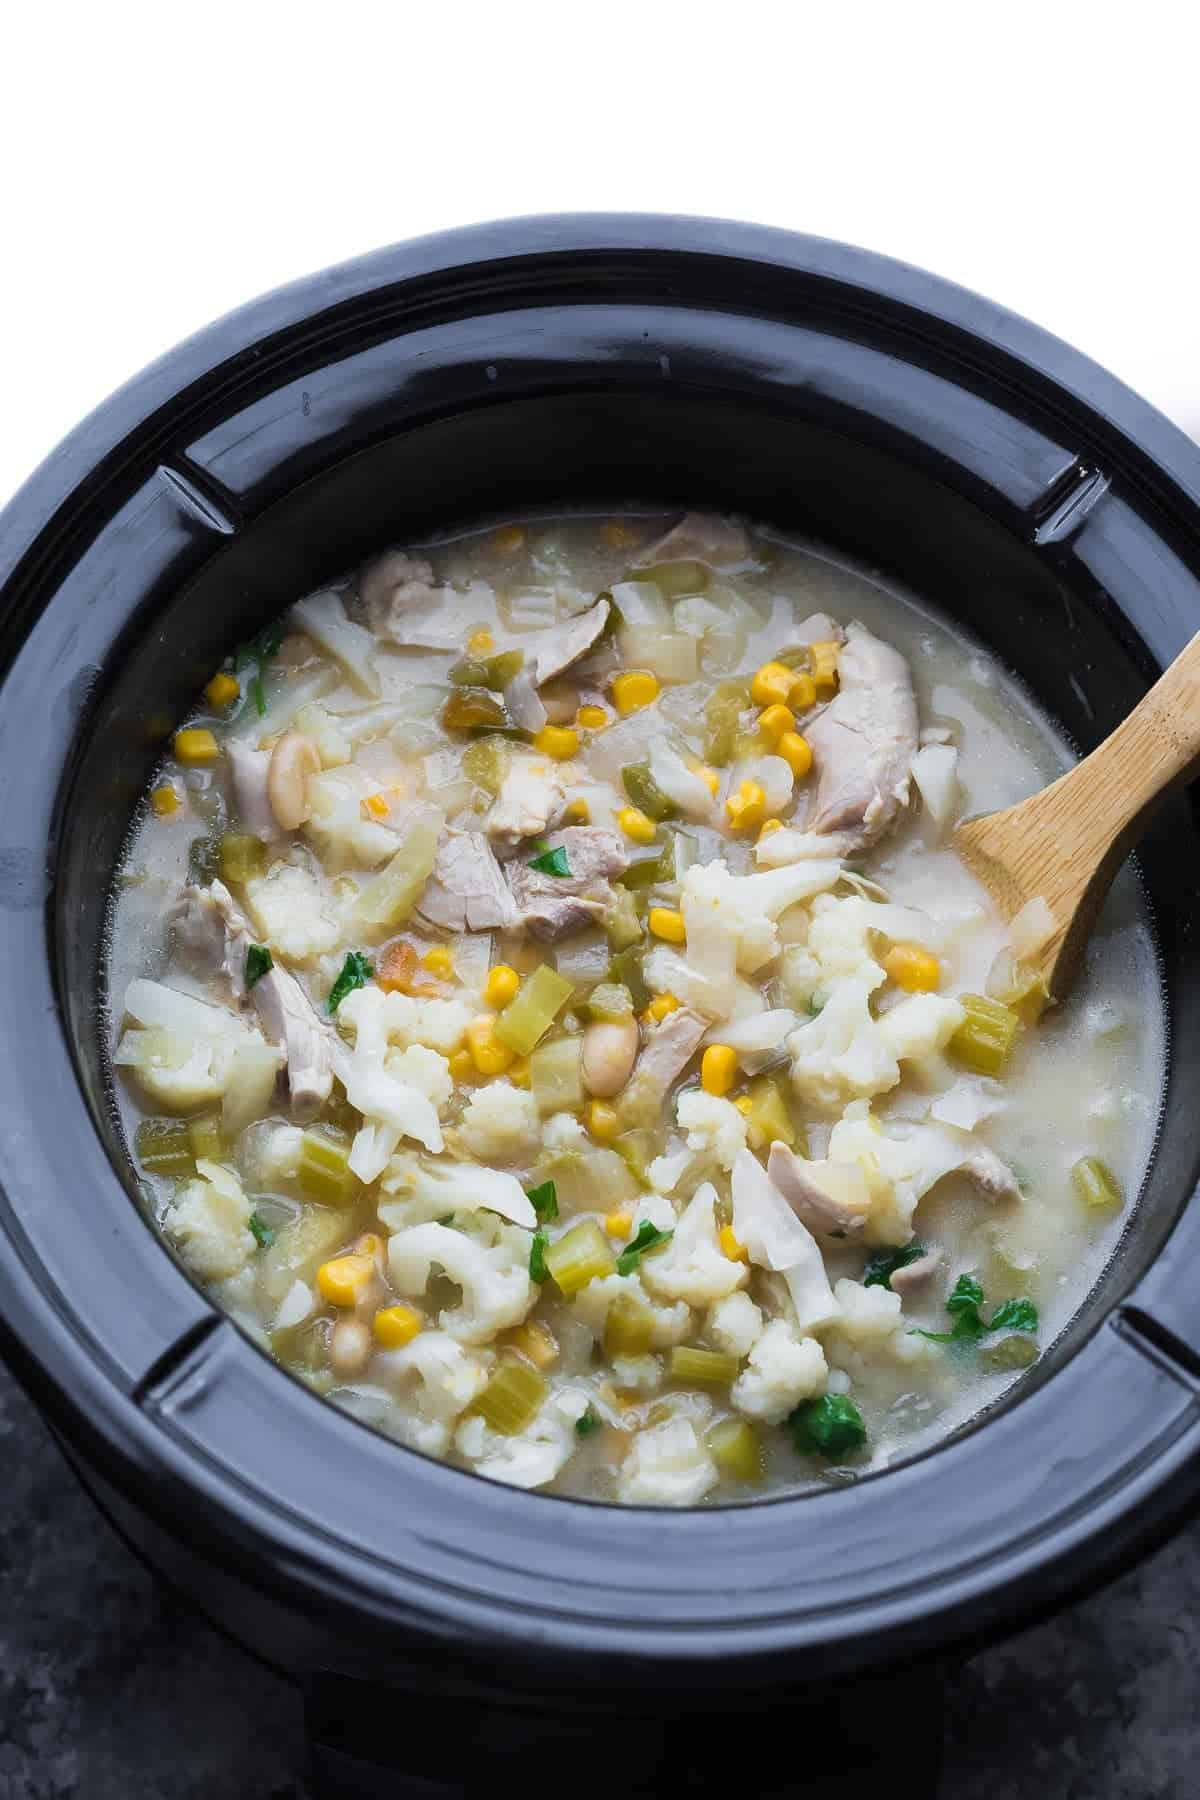 Healthy Slow Cooker White Chicken Chili (Assemble Ahead)